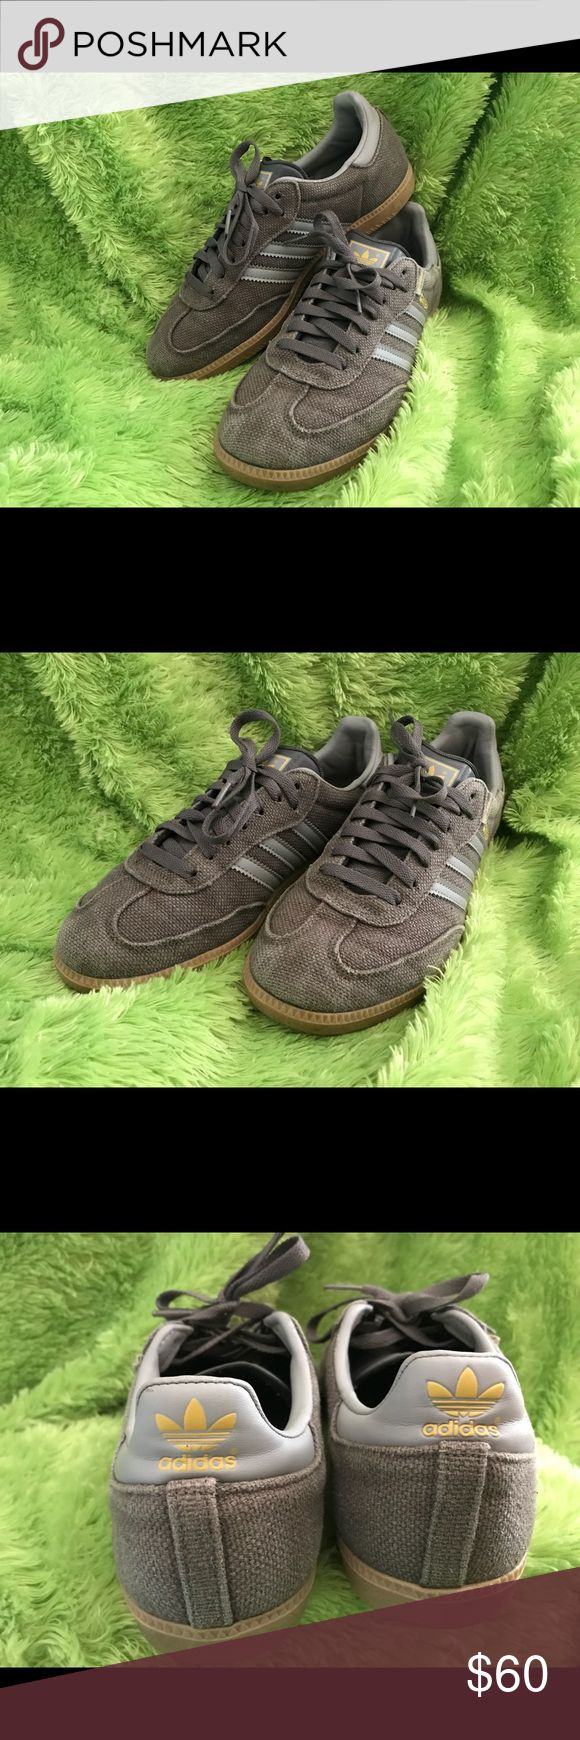 ❥ vintage RARE adidas sambas Men size US 8 / 9.5 womens  I'm a size 8 in womens however, and they still fit perfectly. 10/10 condition, no flaws what so ever! US shipping only! ♡   #adidas #vintage #rare #olivegreen #grey #samba #hipster #90's #shoes #sneakers adidas Shoes Sneakers